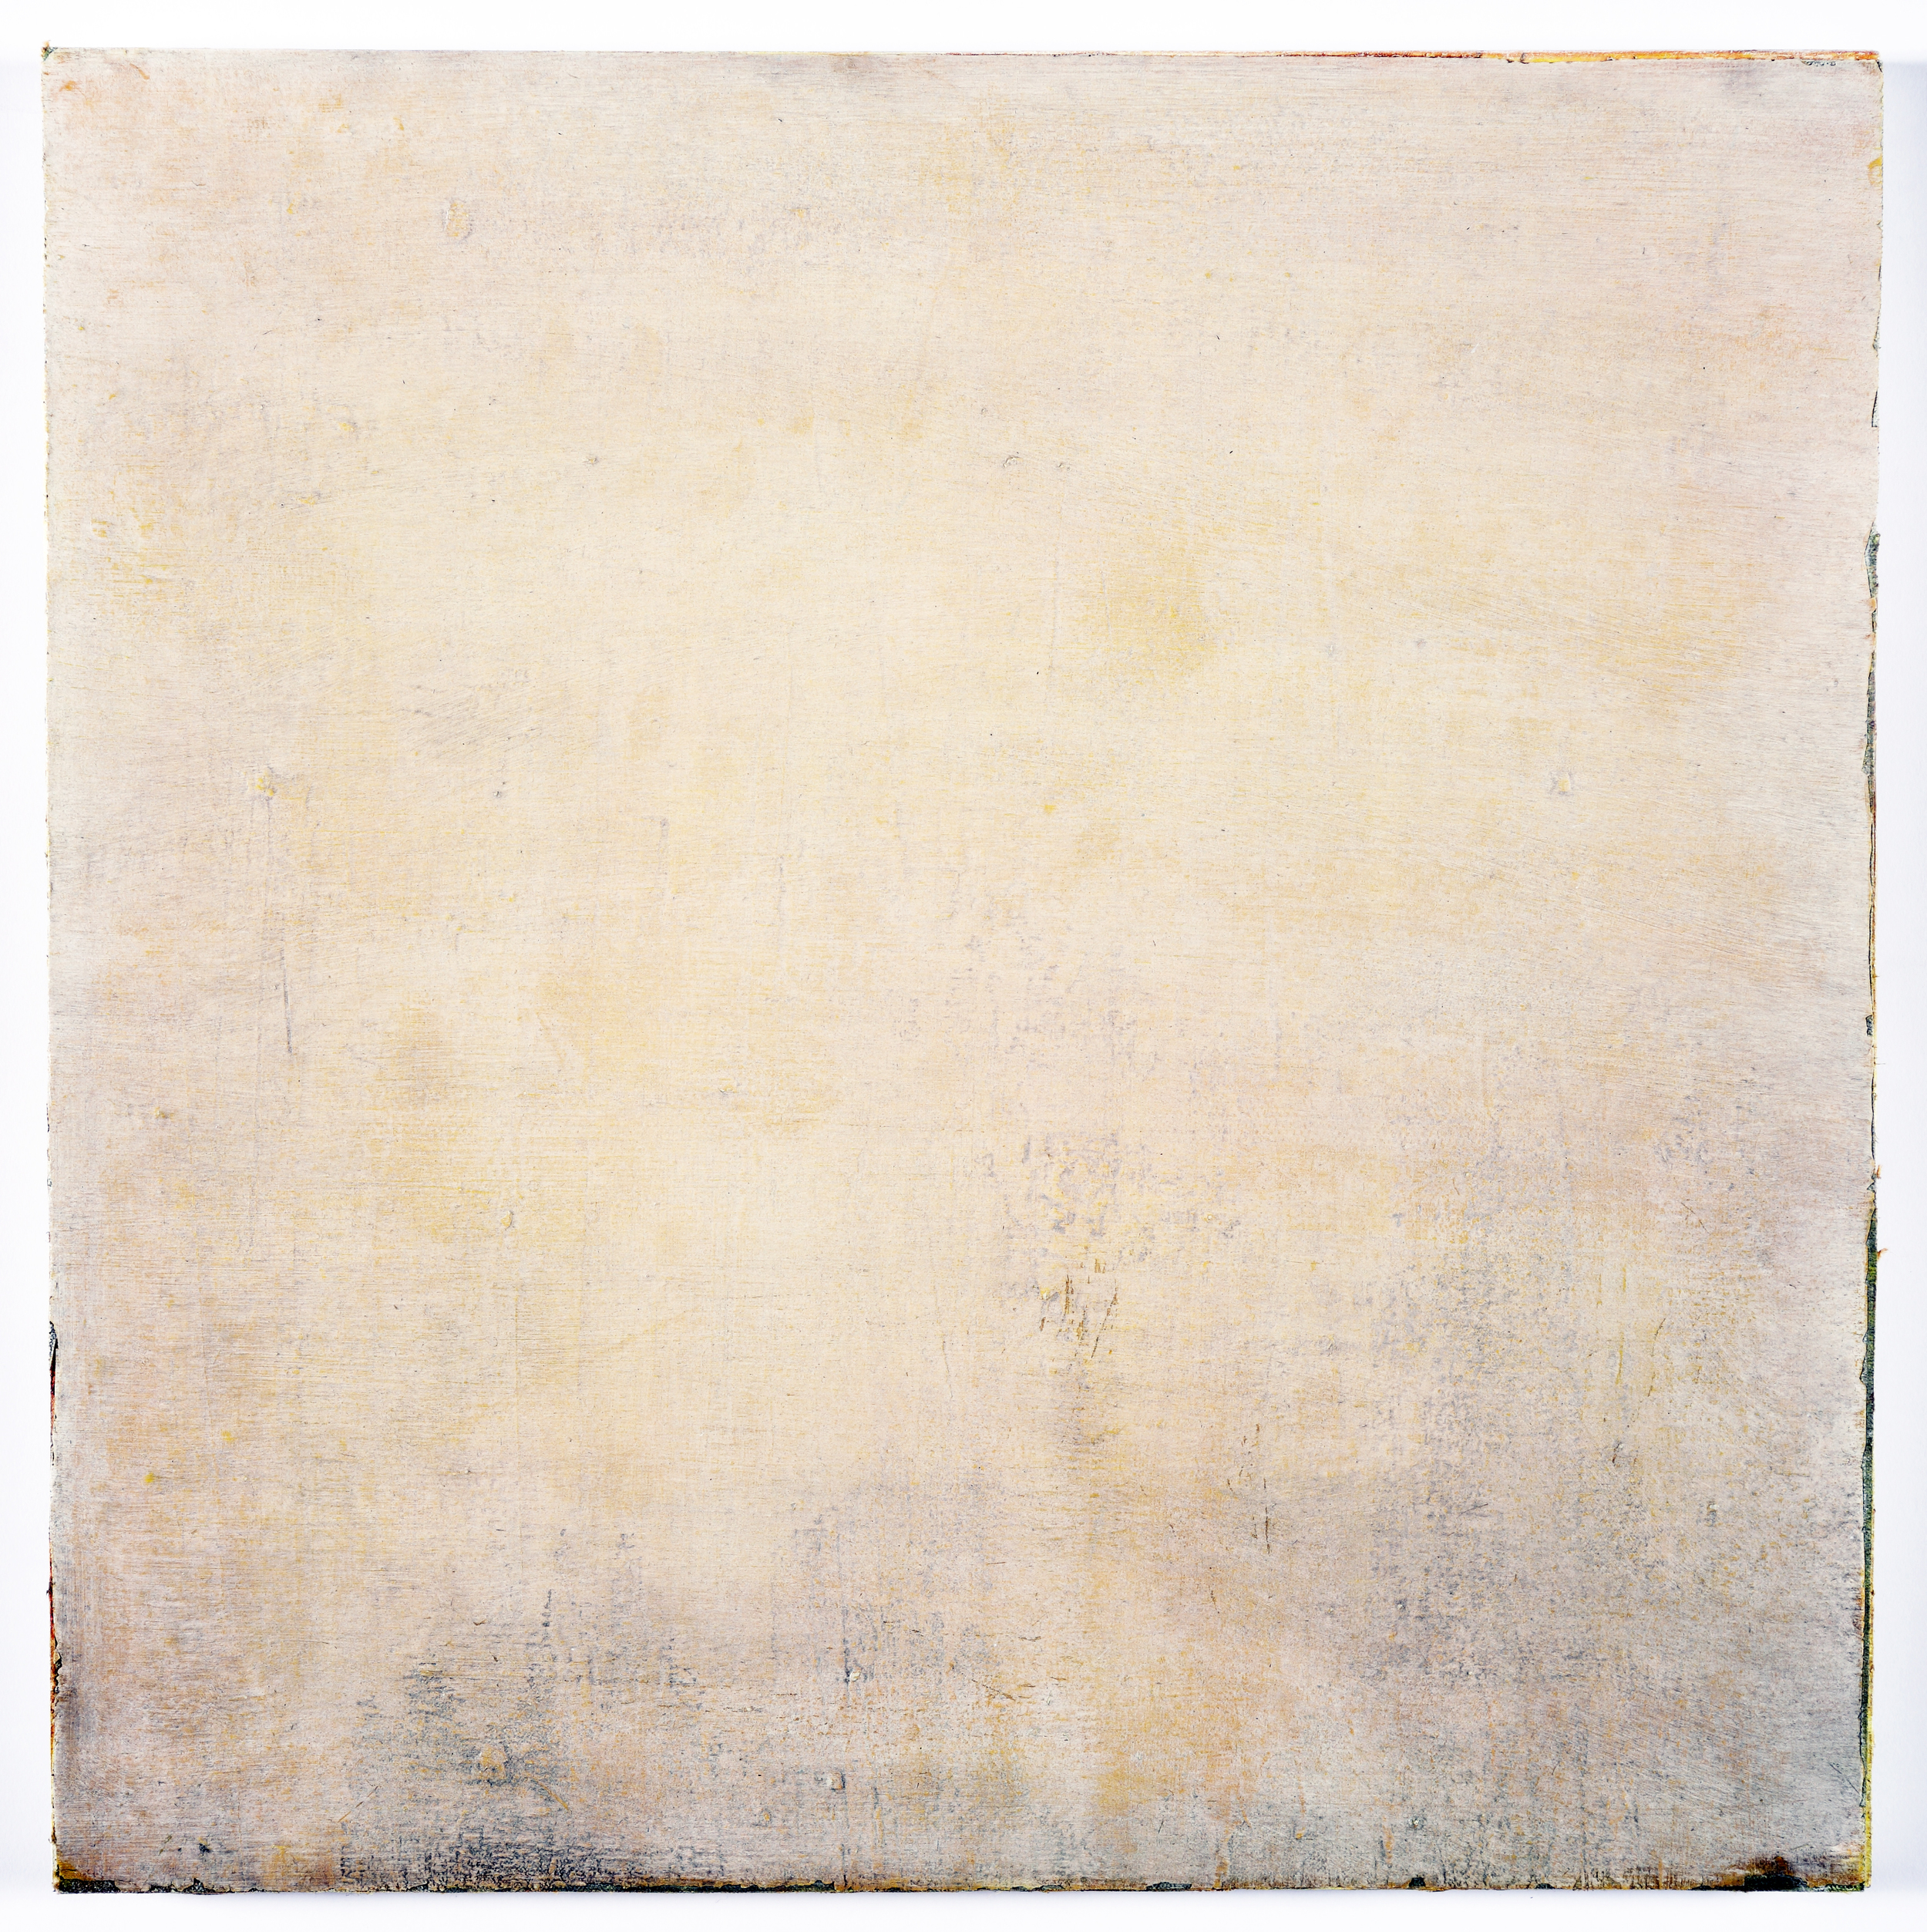 """what remains without remaining?   oil,    dry pigment on salvaged canvas mounted on panel, 20.5x20.5""""  2008-2013  $700"""